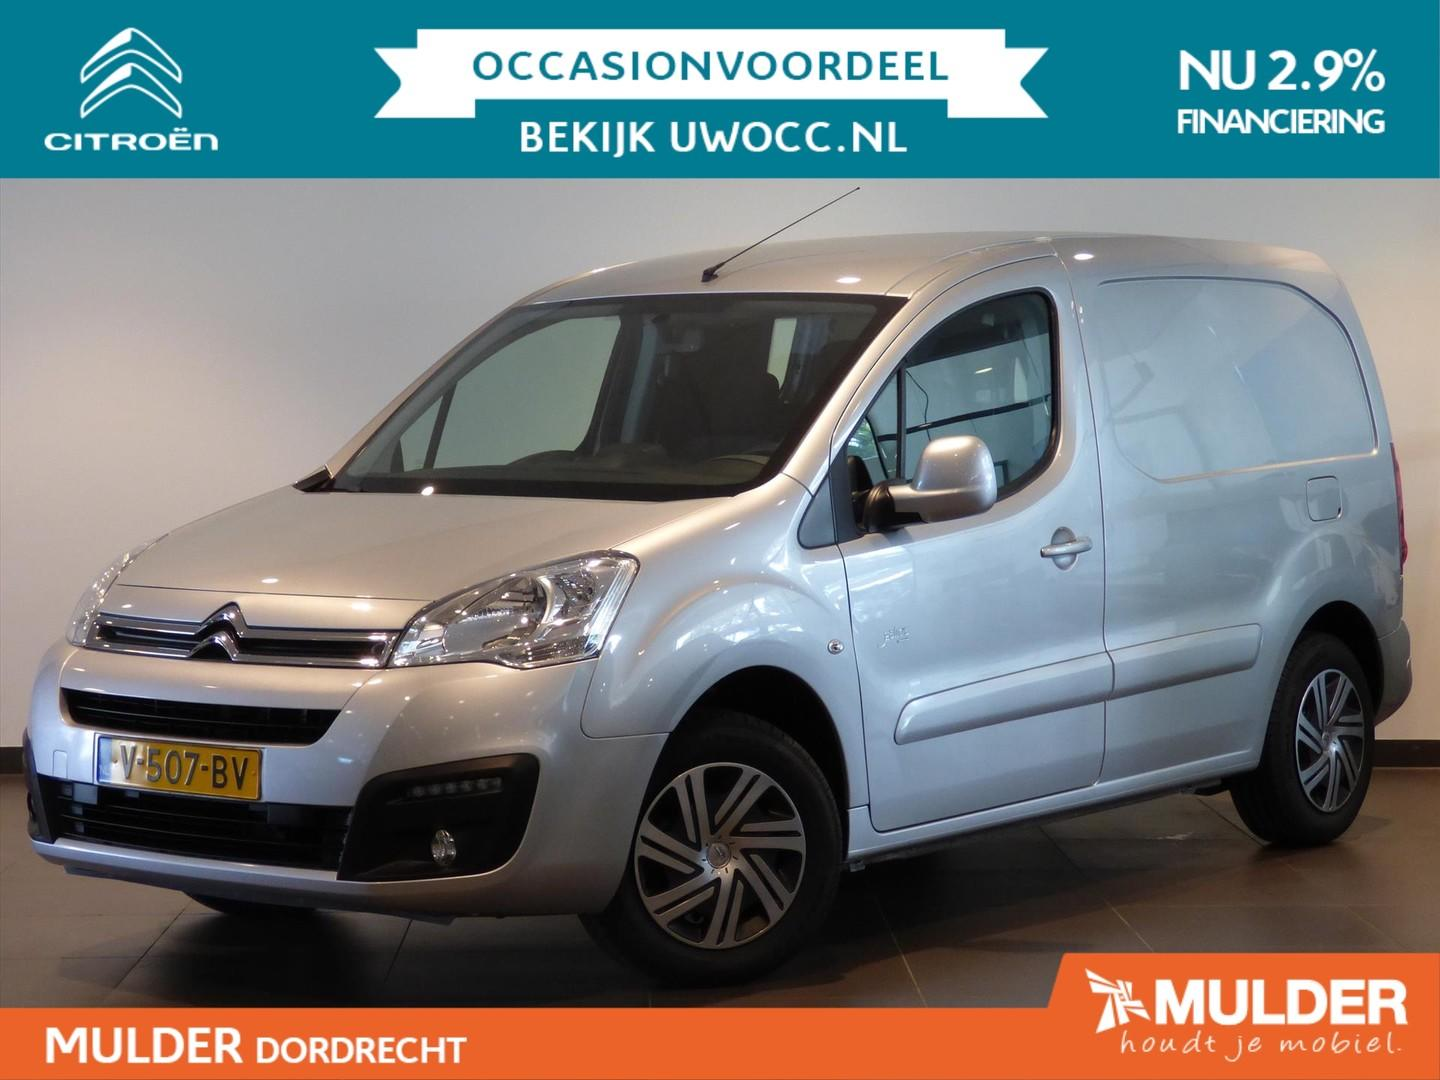 Citroën Berlingo Bluehdi 1.6 100pk s&s etg business economy